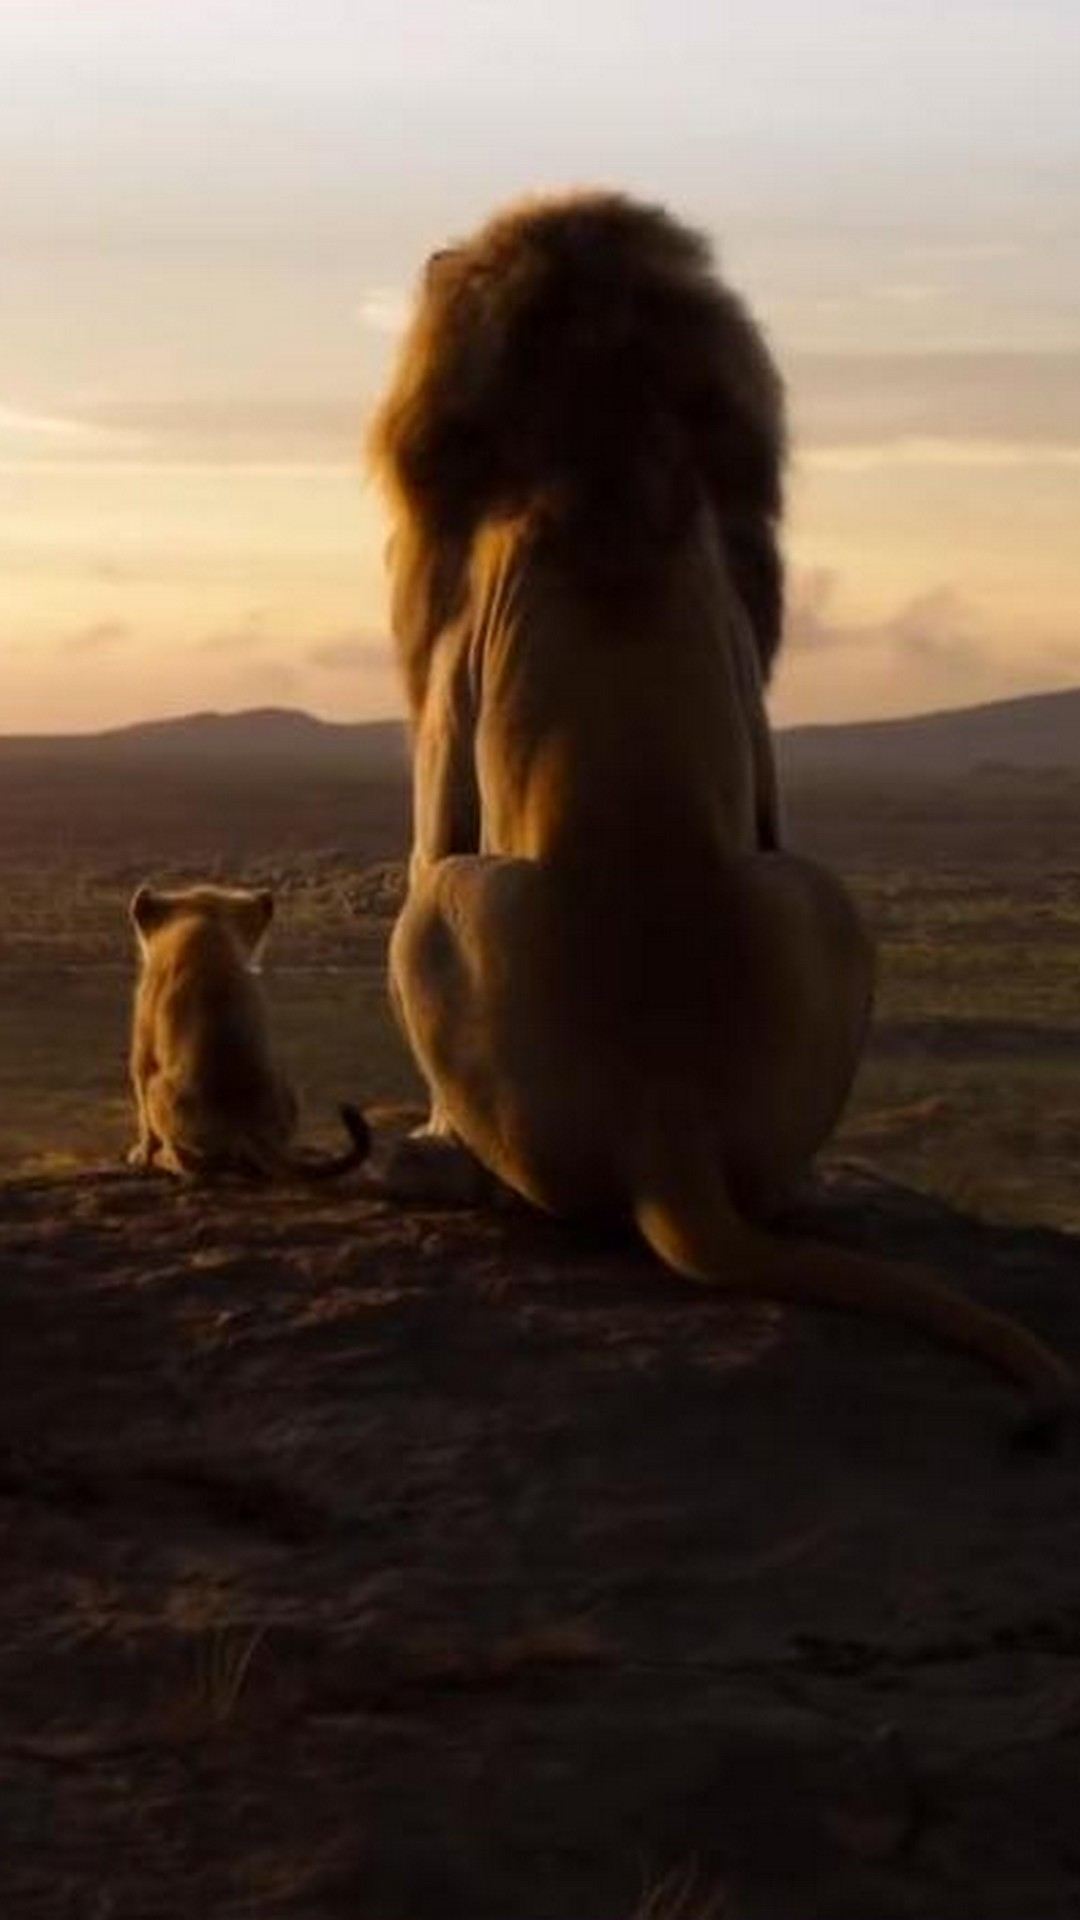 The Lion King 2019 Poster Movie 2019 Movie Poster Wallpaper HD